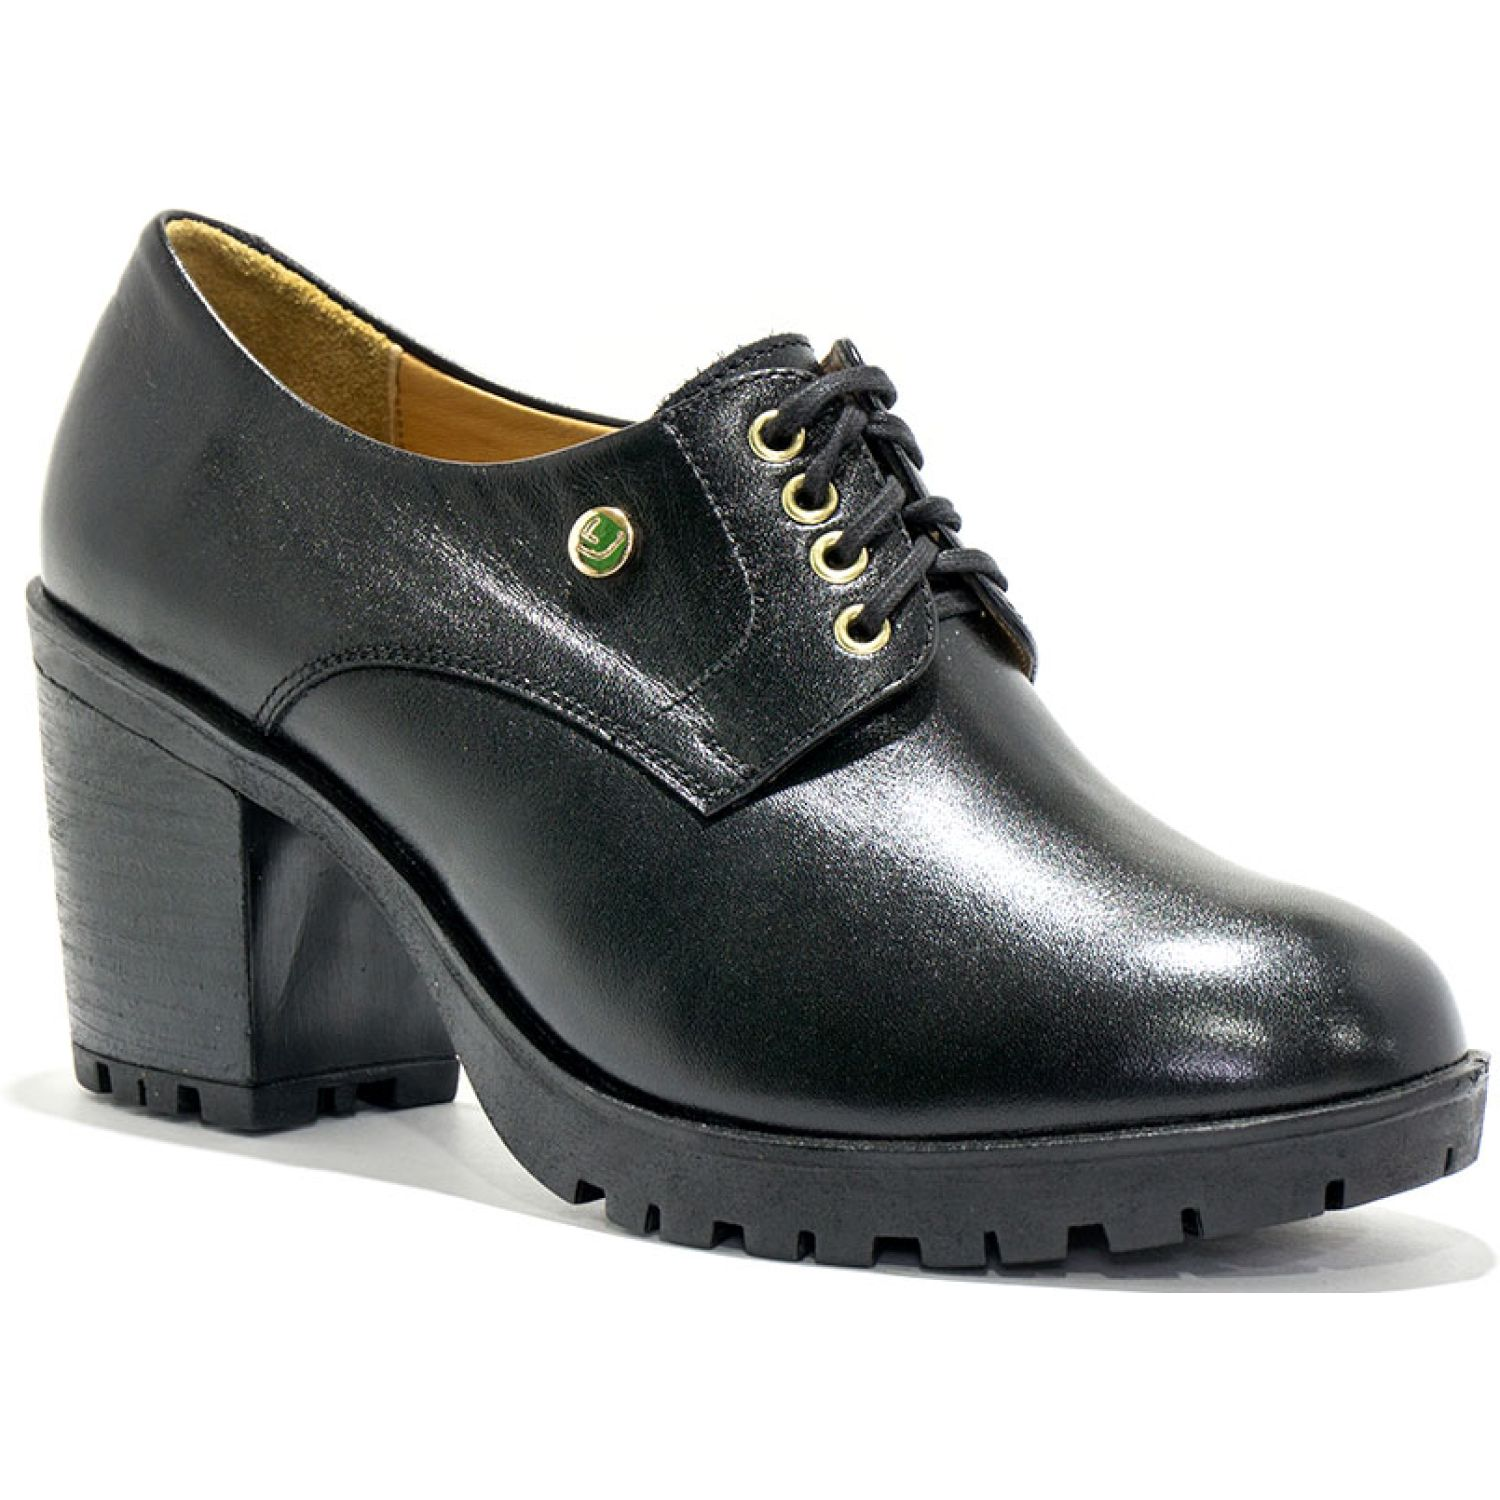 LumberJack 026545-man Negro Oxfords